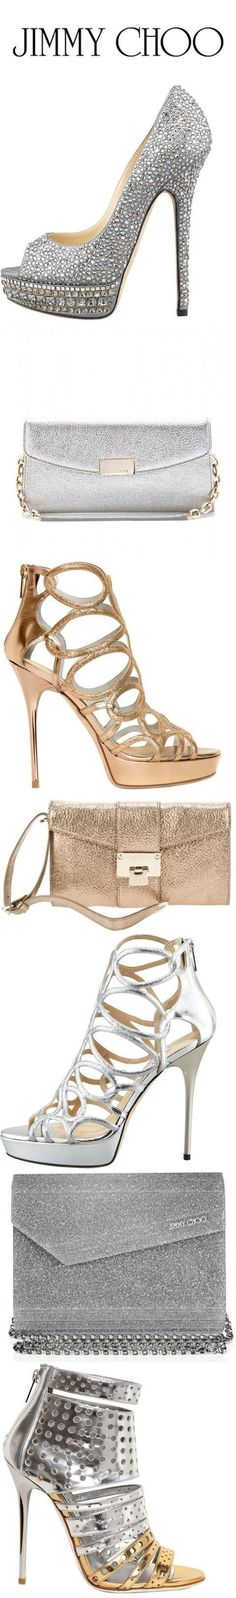 Jimmy Choo = Shoes and Bag Love #jimmychoobags